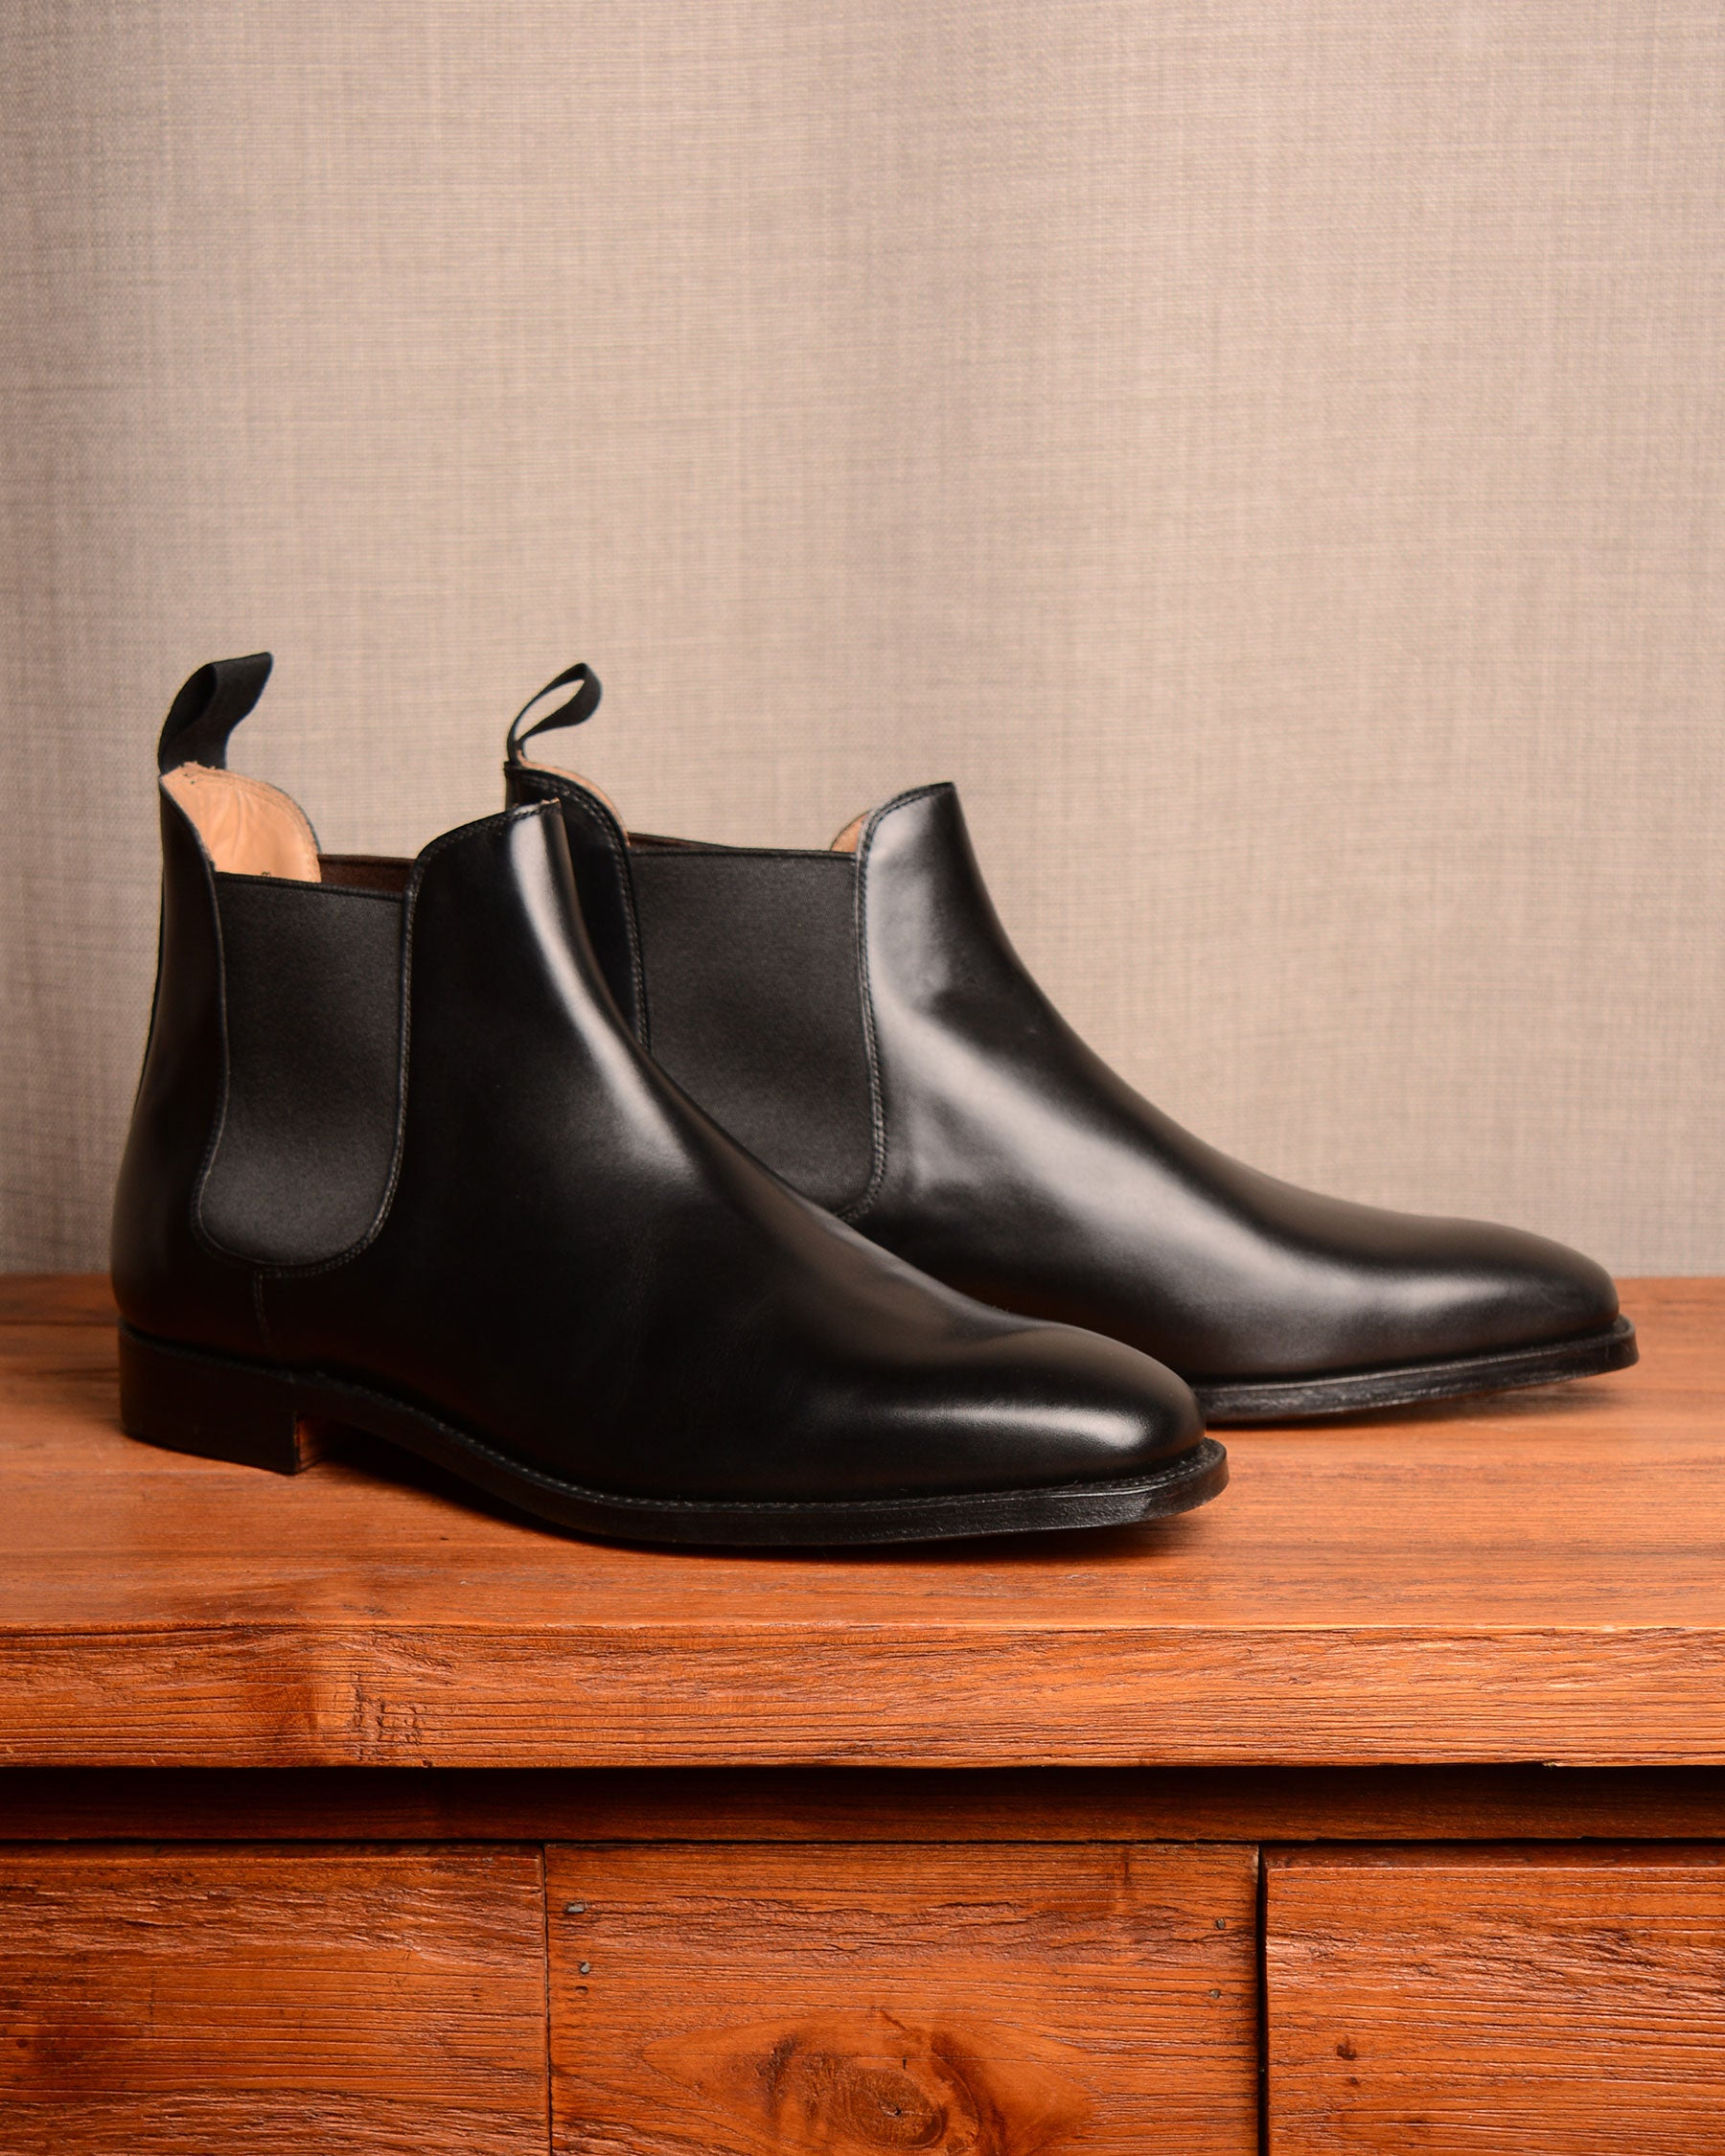 Crockett & Jones Chelsea - Black